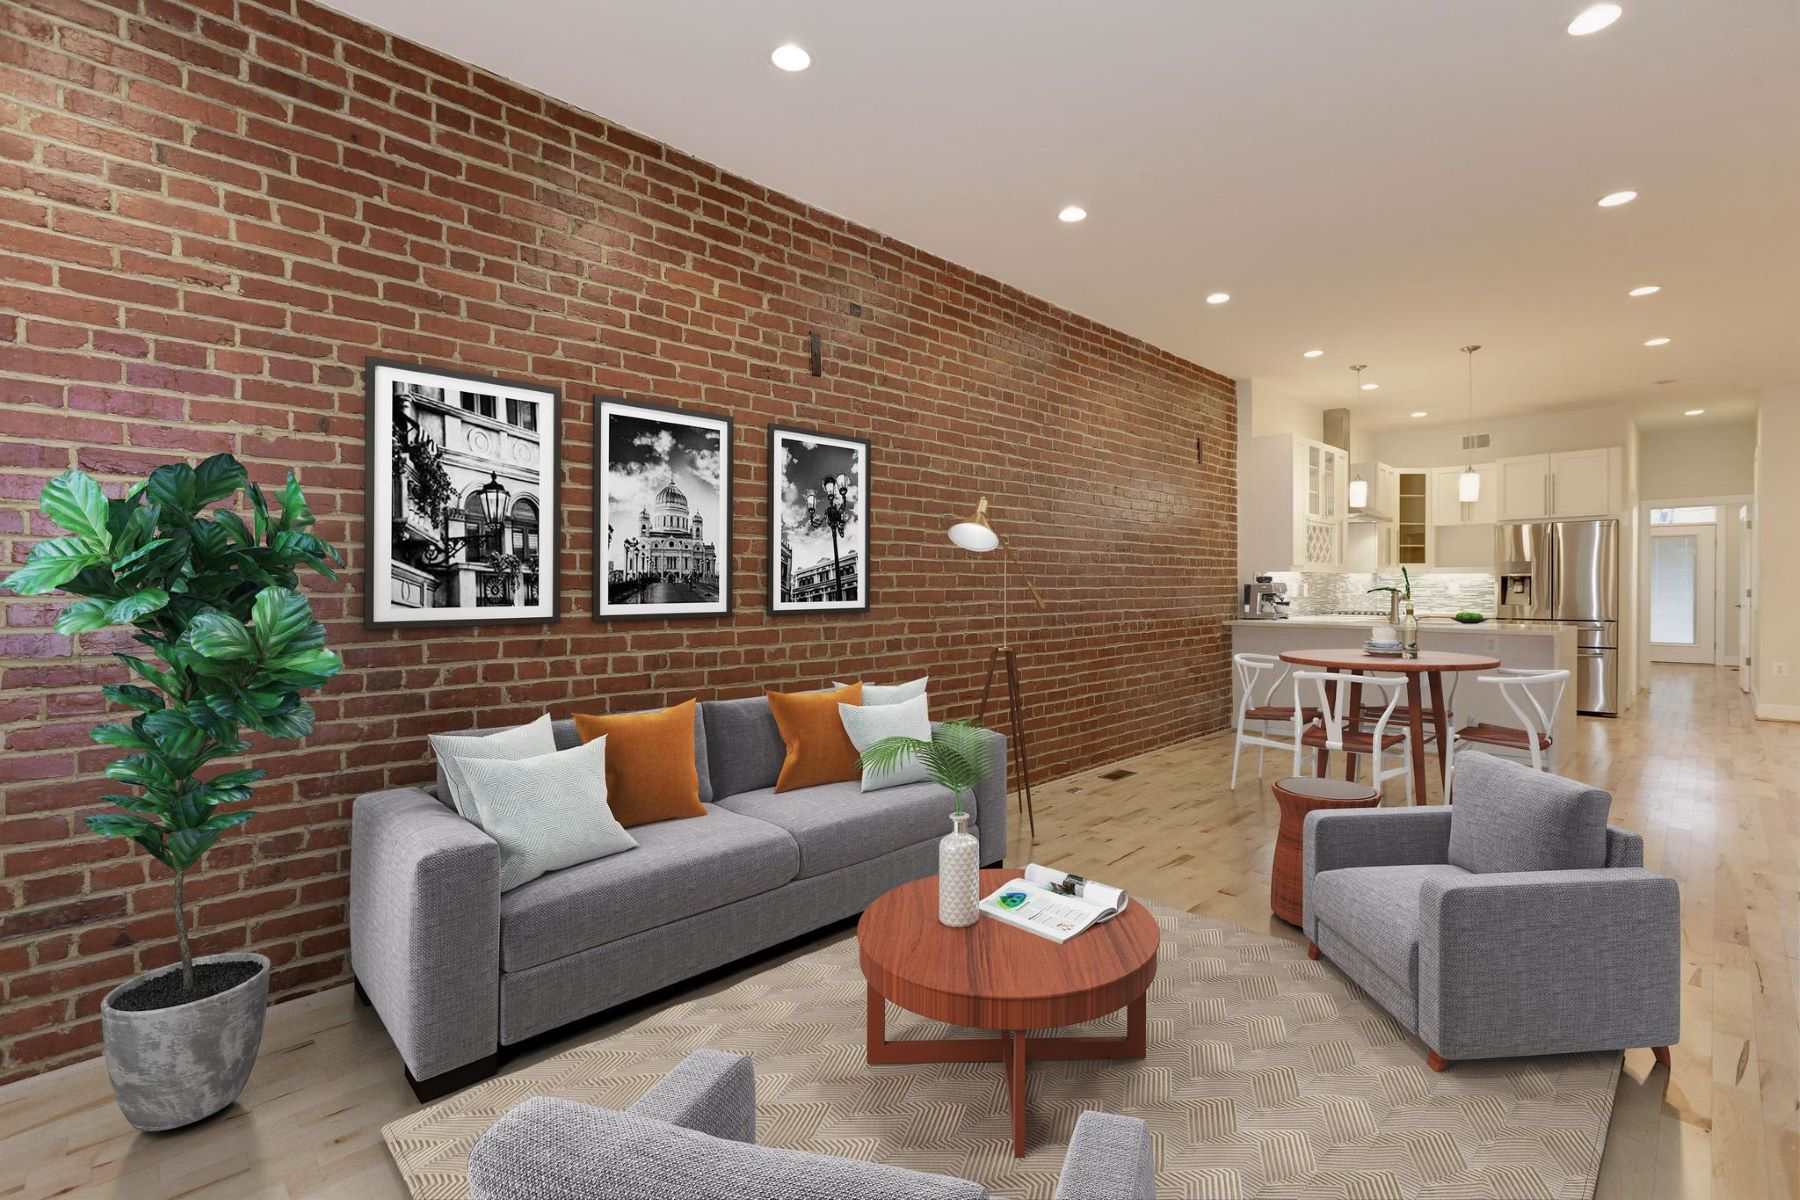 Other Residential for Sale at 1114 Monroe St NW #1 1114 Monroe St NW #1 Washington, District Of Columbia 20010 United States